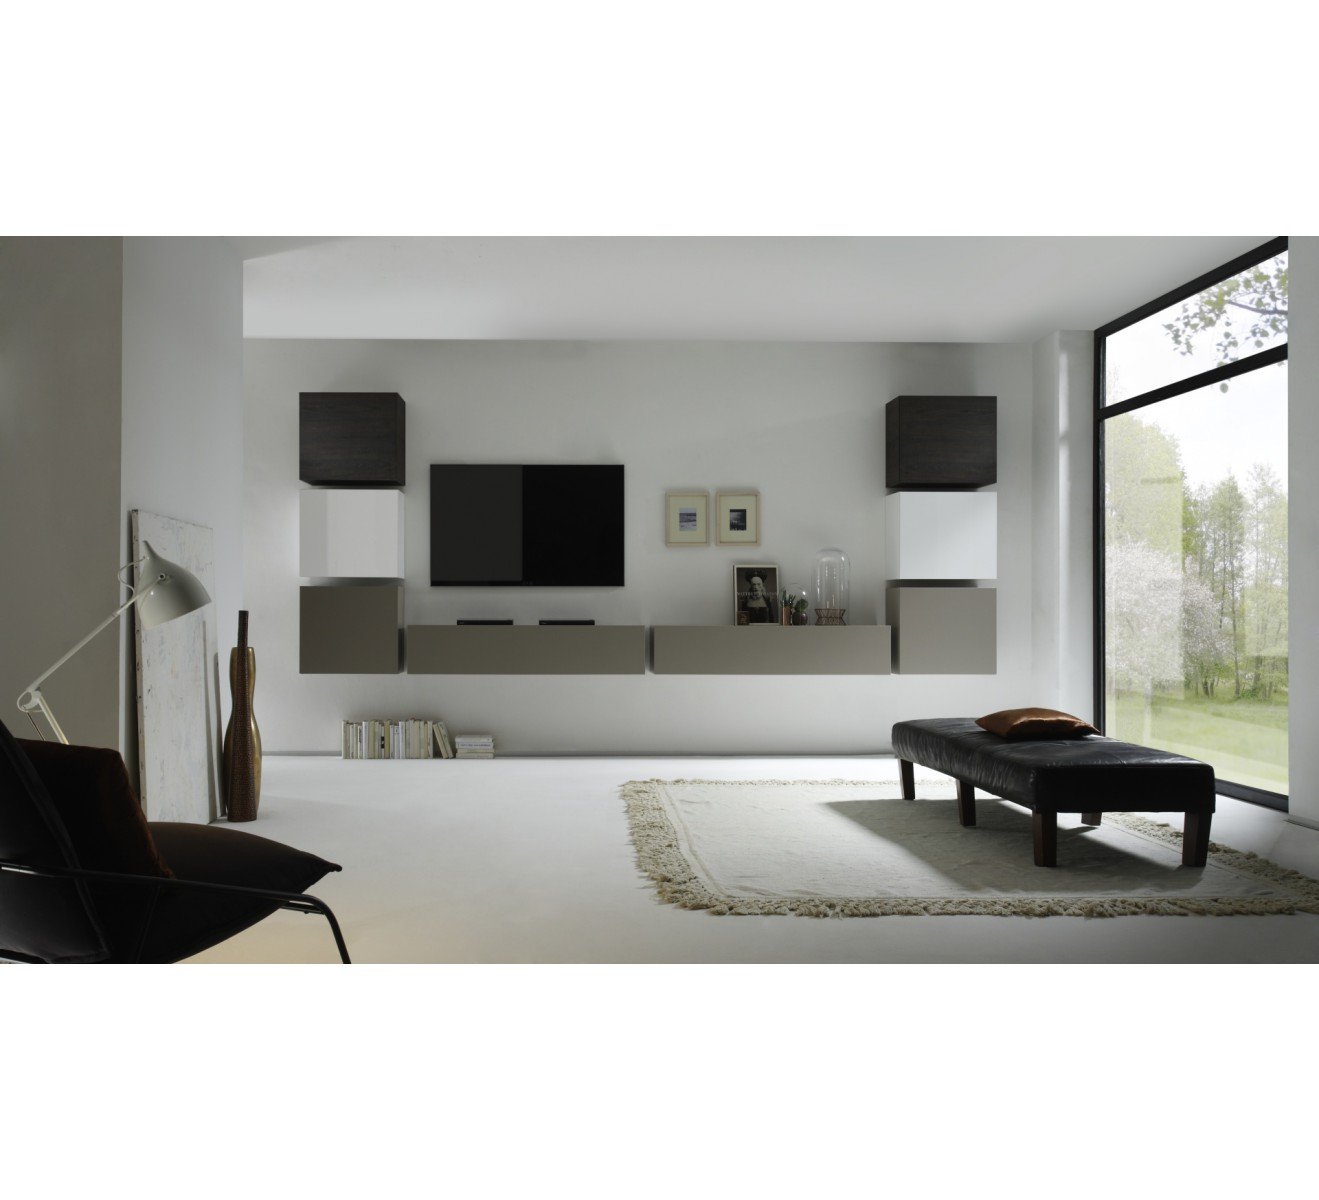 Ensemble meuble tv gris id es de d coration int rieure for Ensemble meuble tv gris